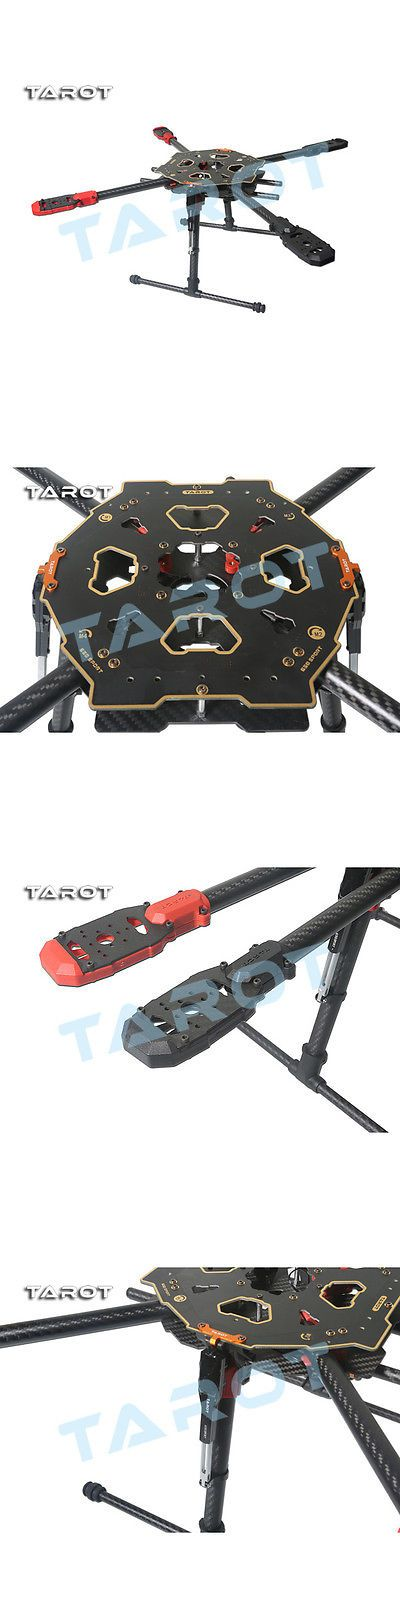 Chassis Plates Frames and Kits 182198: Authorized Tarot 650 Sport Quadcopter Frame With Landing Gear Tl65s01 -> BUY IT NOW ONLY: $145.99 on eBay!